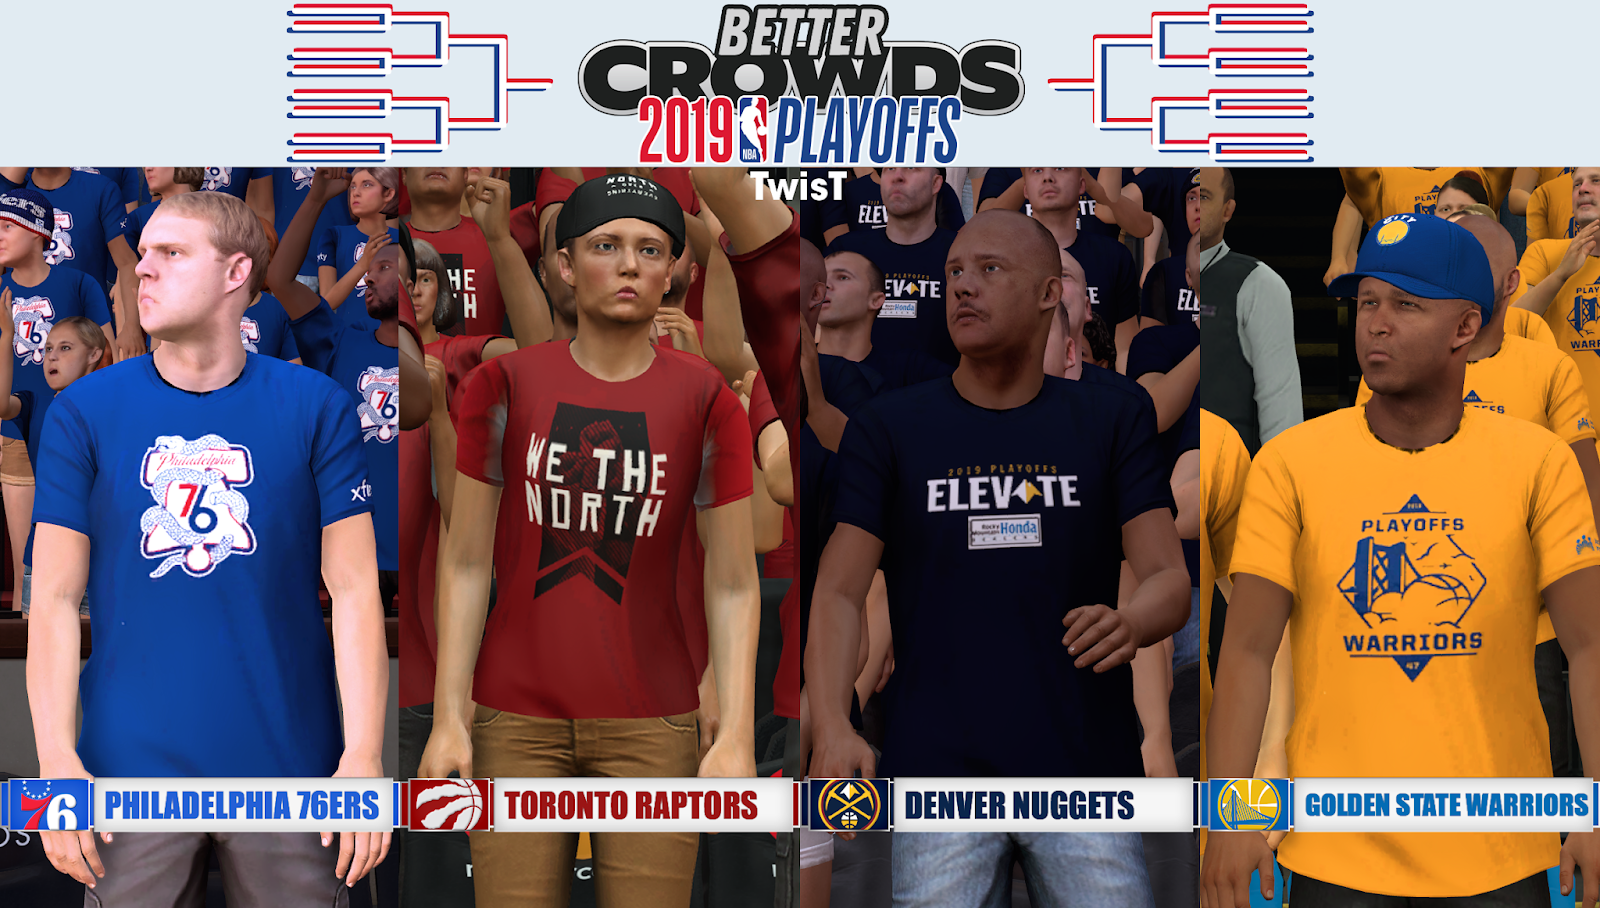 ca146245b44b NBA 2K19 - Crowds 2019 Playoffs Update 5 by TwisT - Shuajota